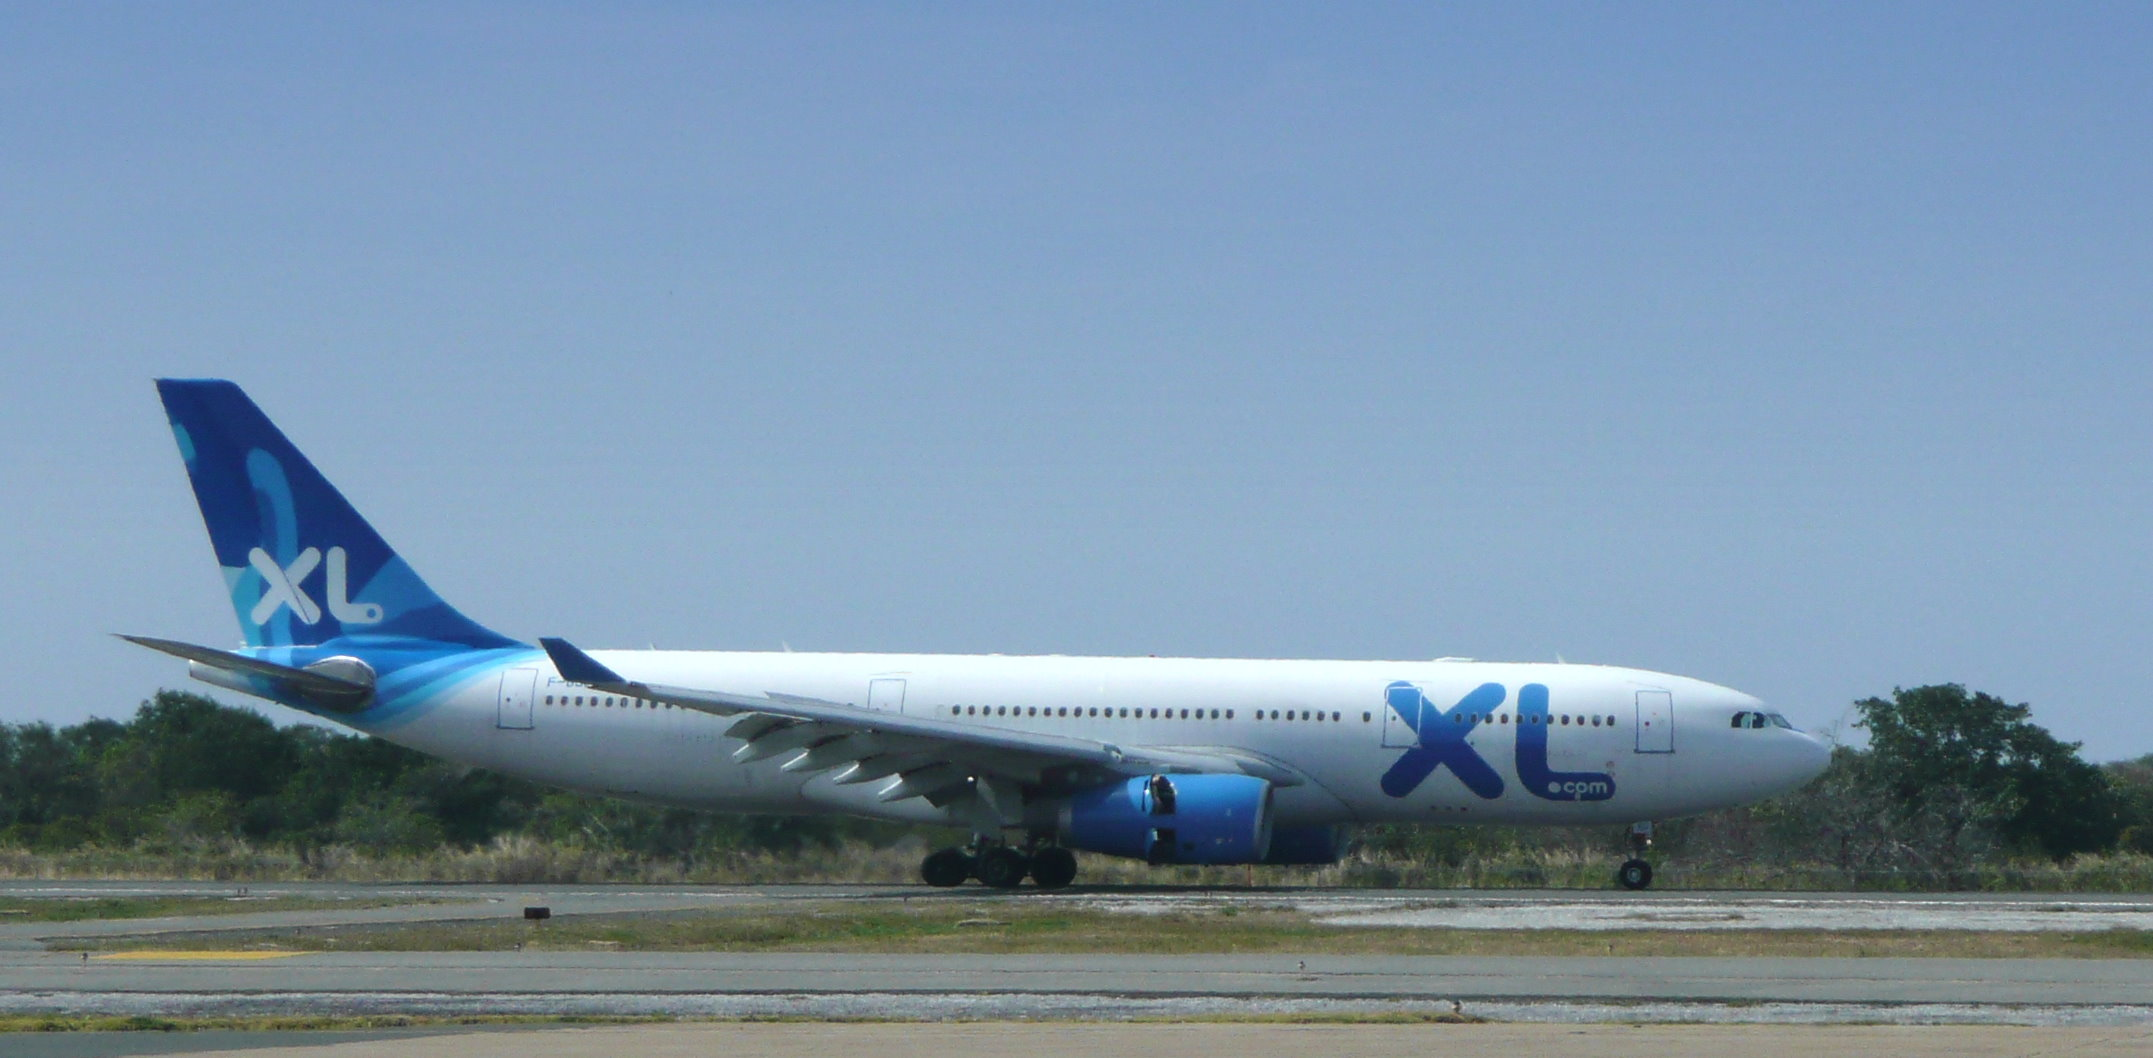 Xl airways france wikiwand for Airbus a330 xl airways interieur